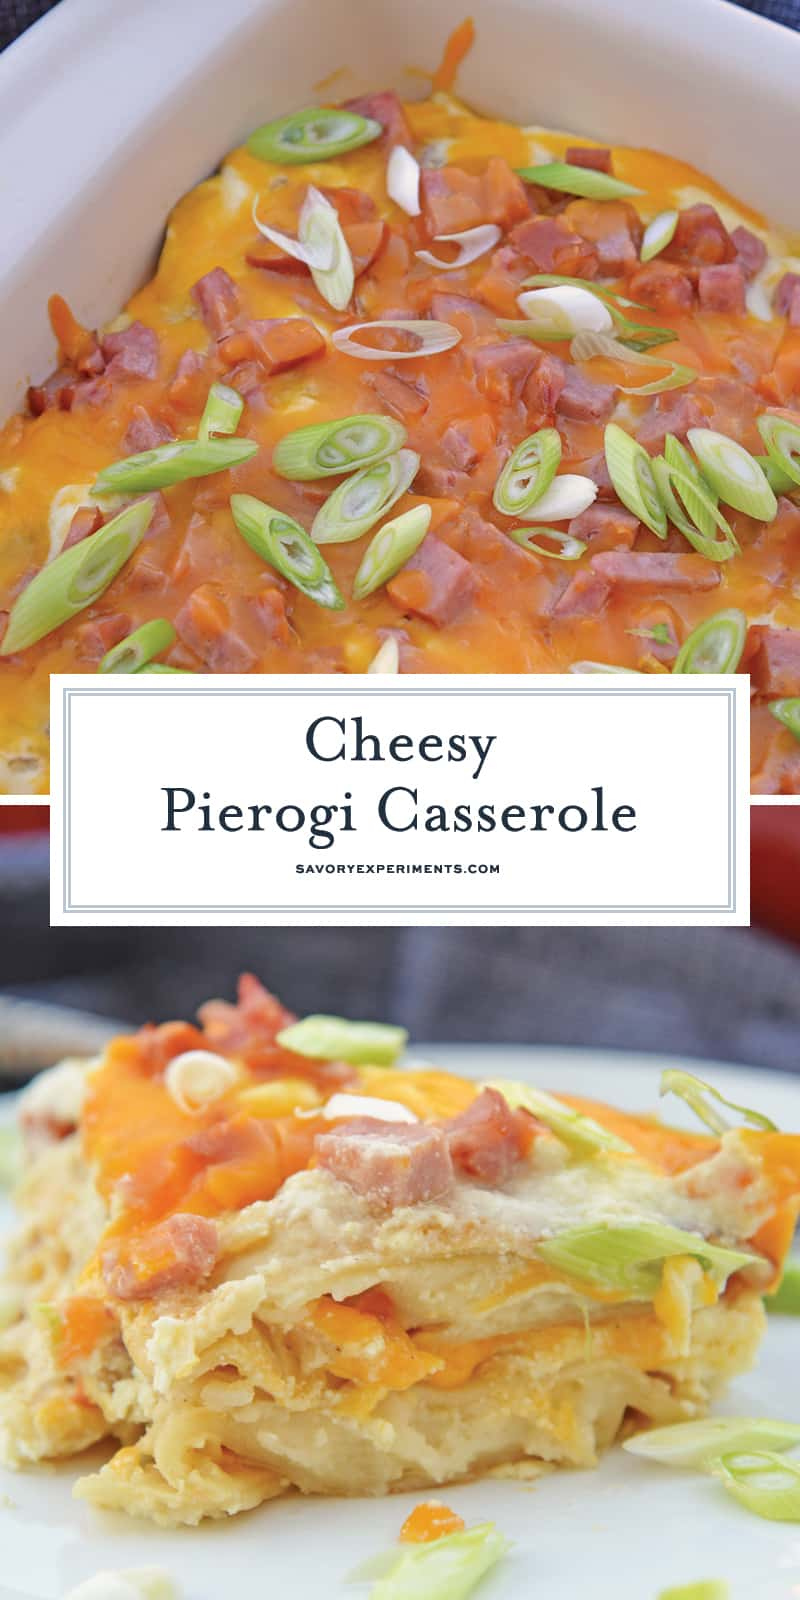 Pierogi Casserole takes your favorite pierogi and layers them with creamy ricotta, smoky kielbasa and cheddar cheese. A family favorite and great for potlucks and parties! #pierogicrecipe #casserolerecipes www.savoryexperiments.com